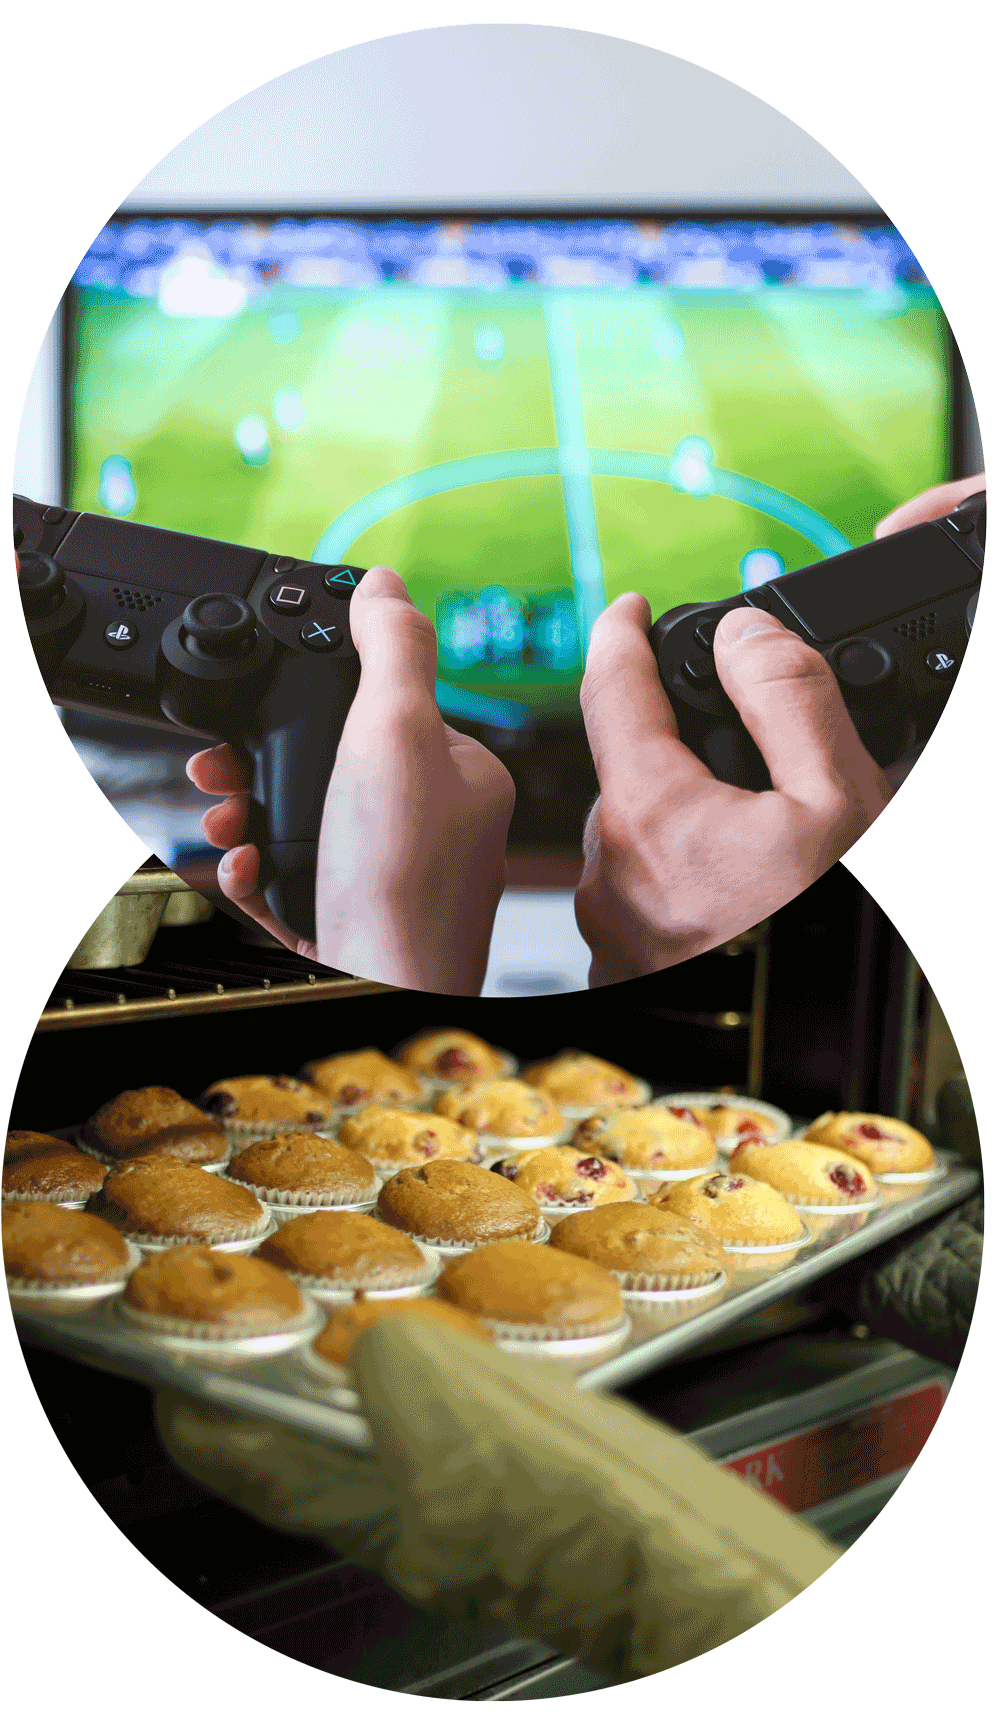 Two sets of hands hold PlayStation controllers in front of a brightly light television displaying a game of soccer. Oven mitted hands reach into an oven, taking out a tray of freshly cooked muffins.